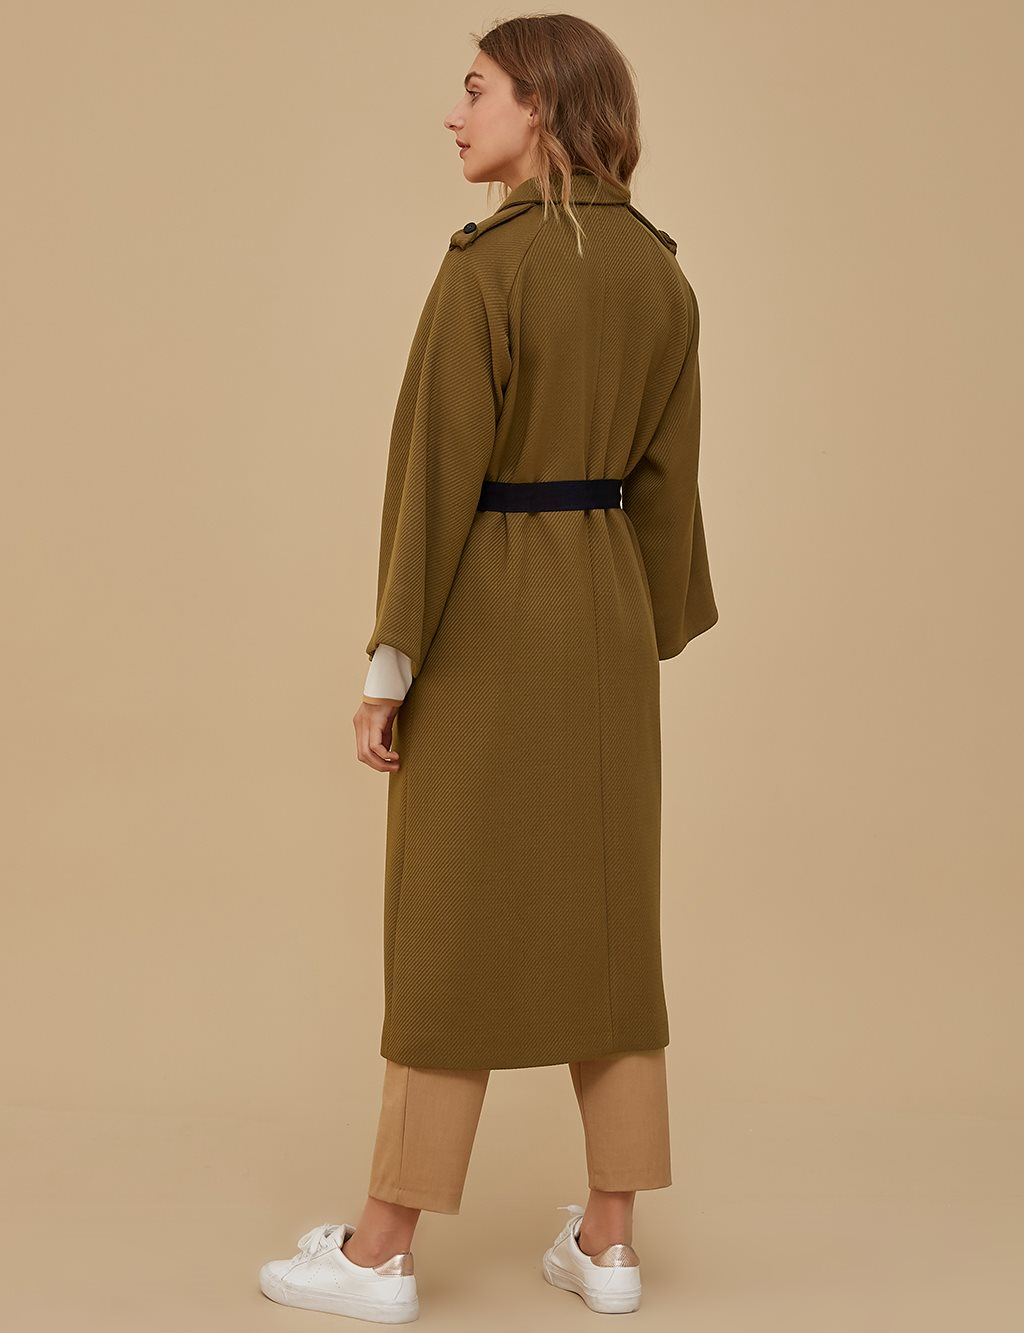 KYR Three Quarter Sleeve Coat Khaki | Navy A9 77004